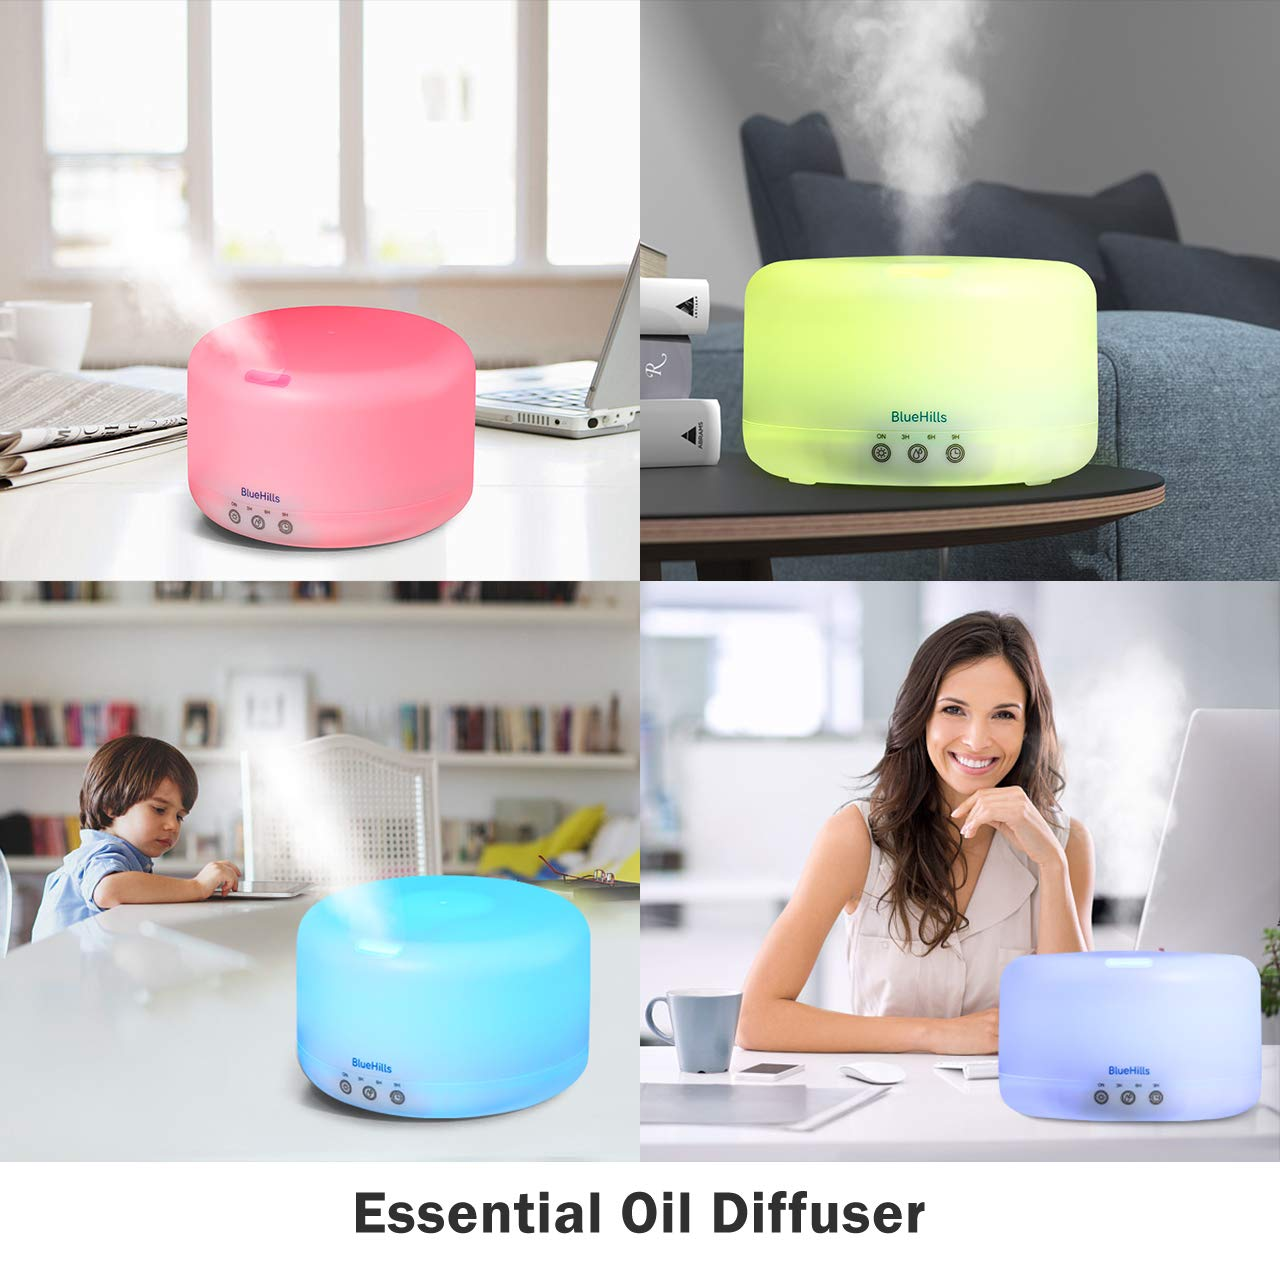 BlueHills Premium 1000 ML XL Essential Oil Diffuser Aromatherapy Humidifier with Remote for Large Room Home 18 Hour Run Huge Coverage Area 1 Liter Mood Lights Extra Large Capacity White D001